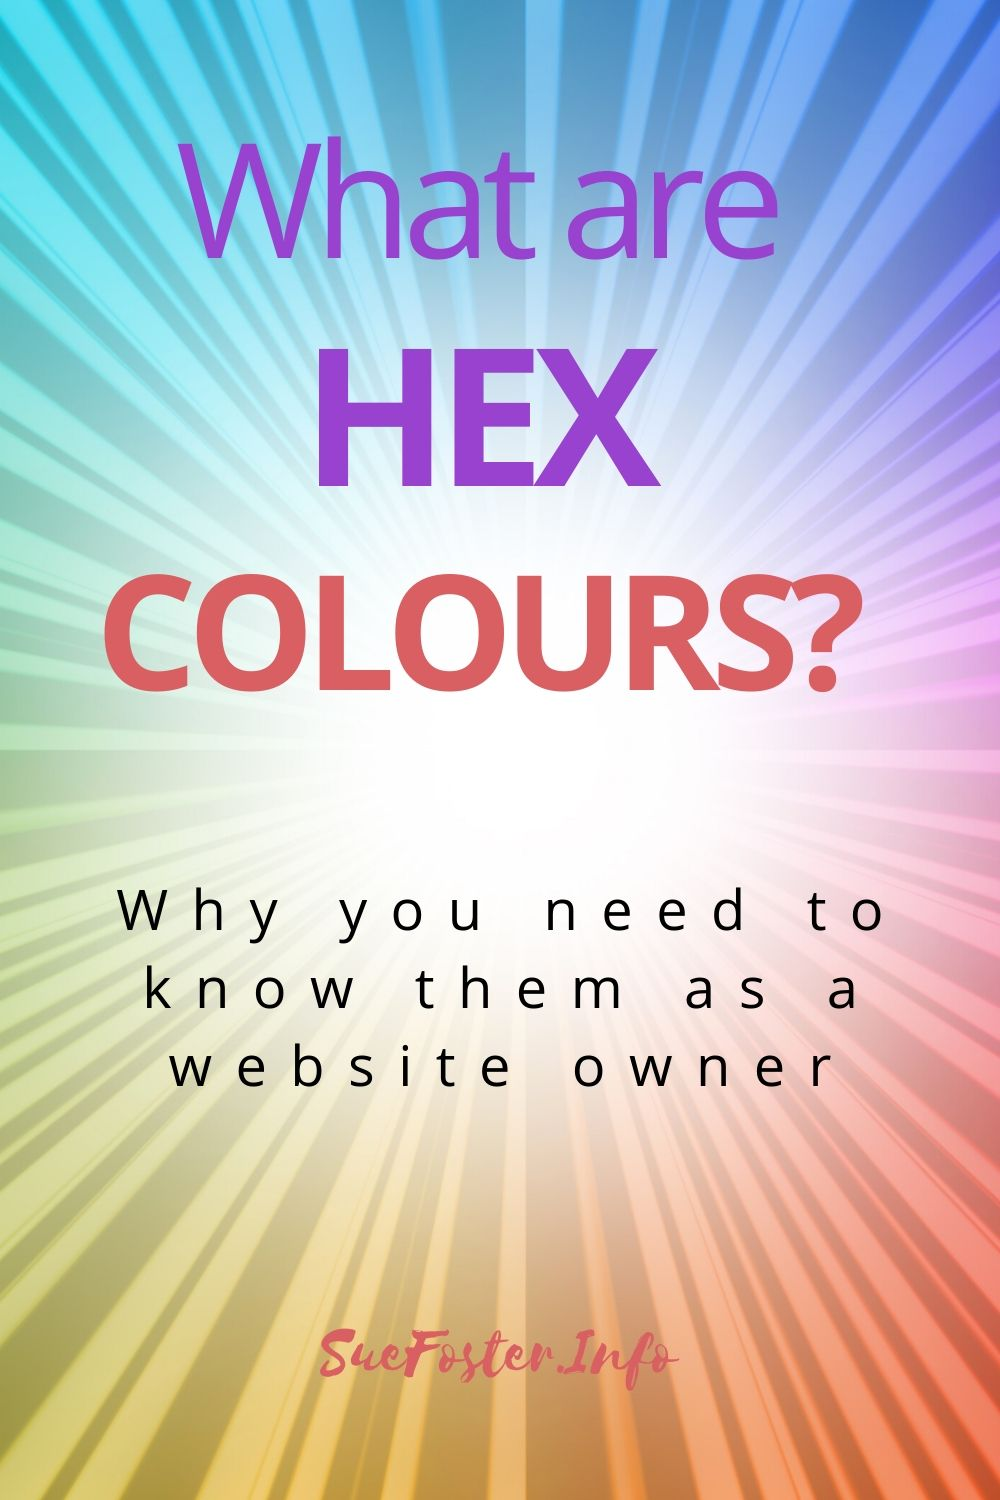 This post explains what hex colours are and why you need to know them as a website owner.